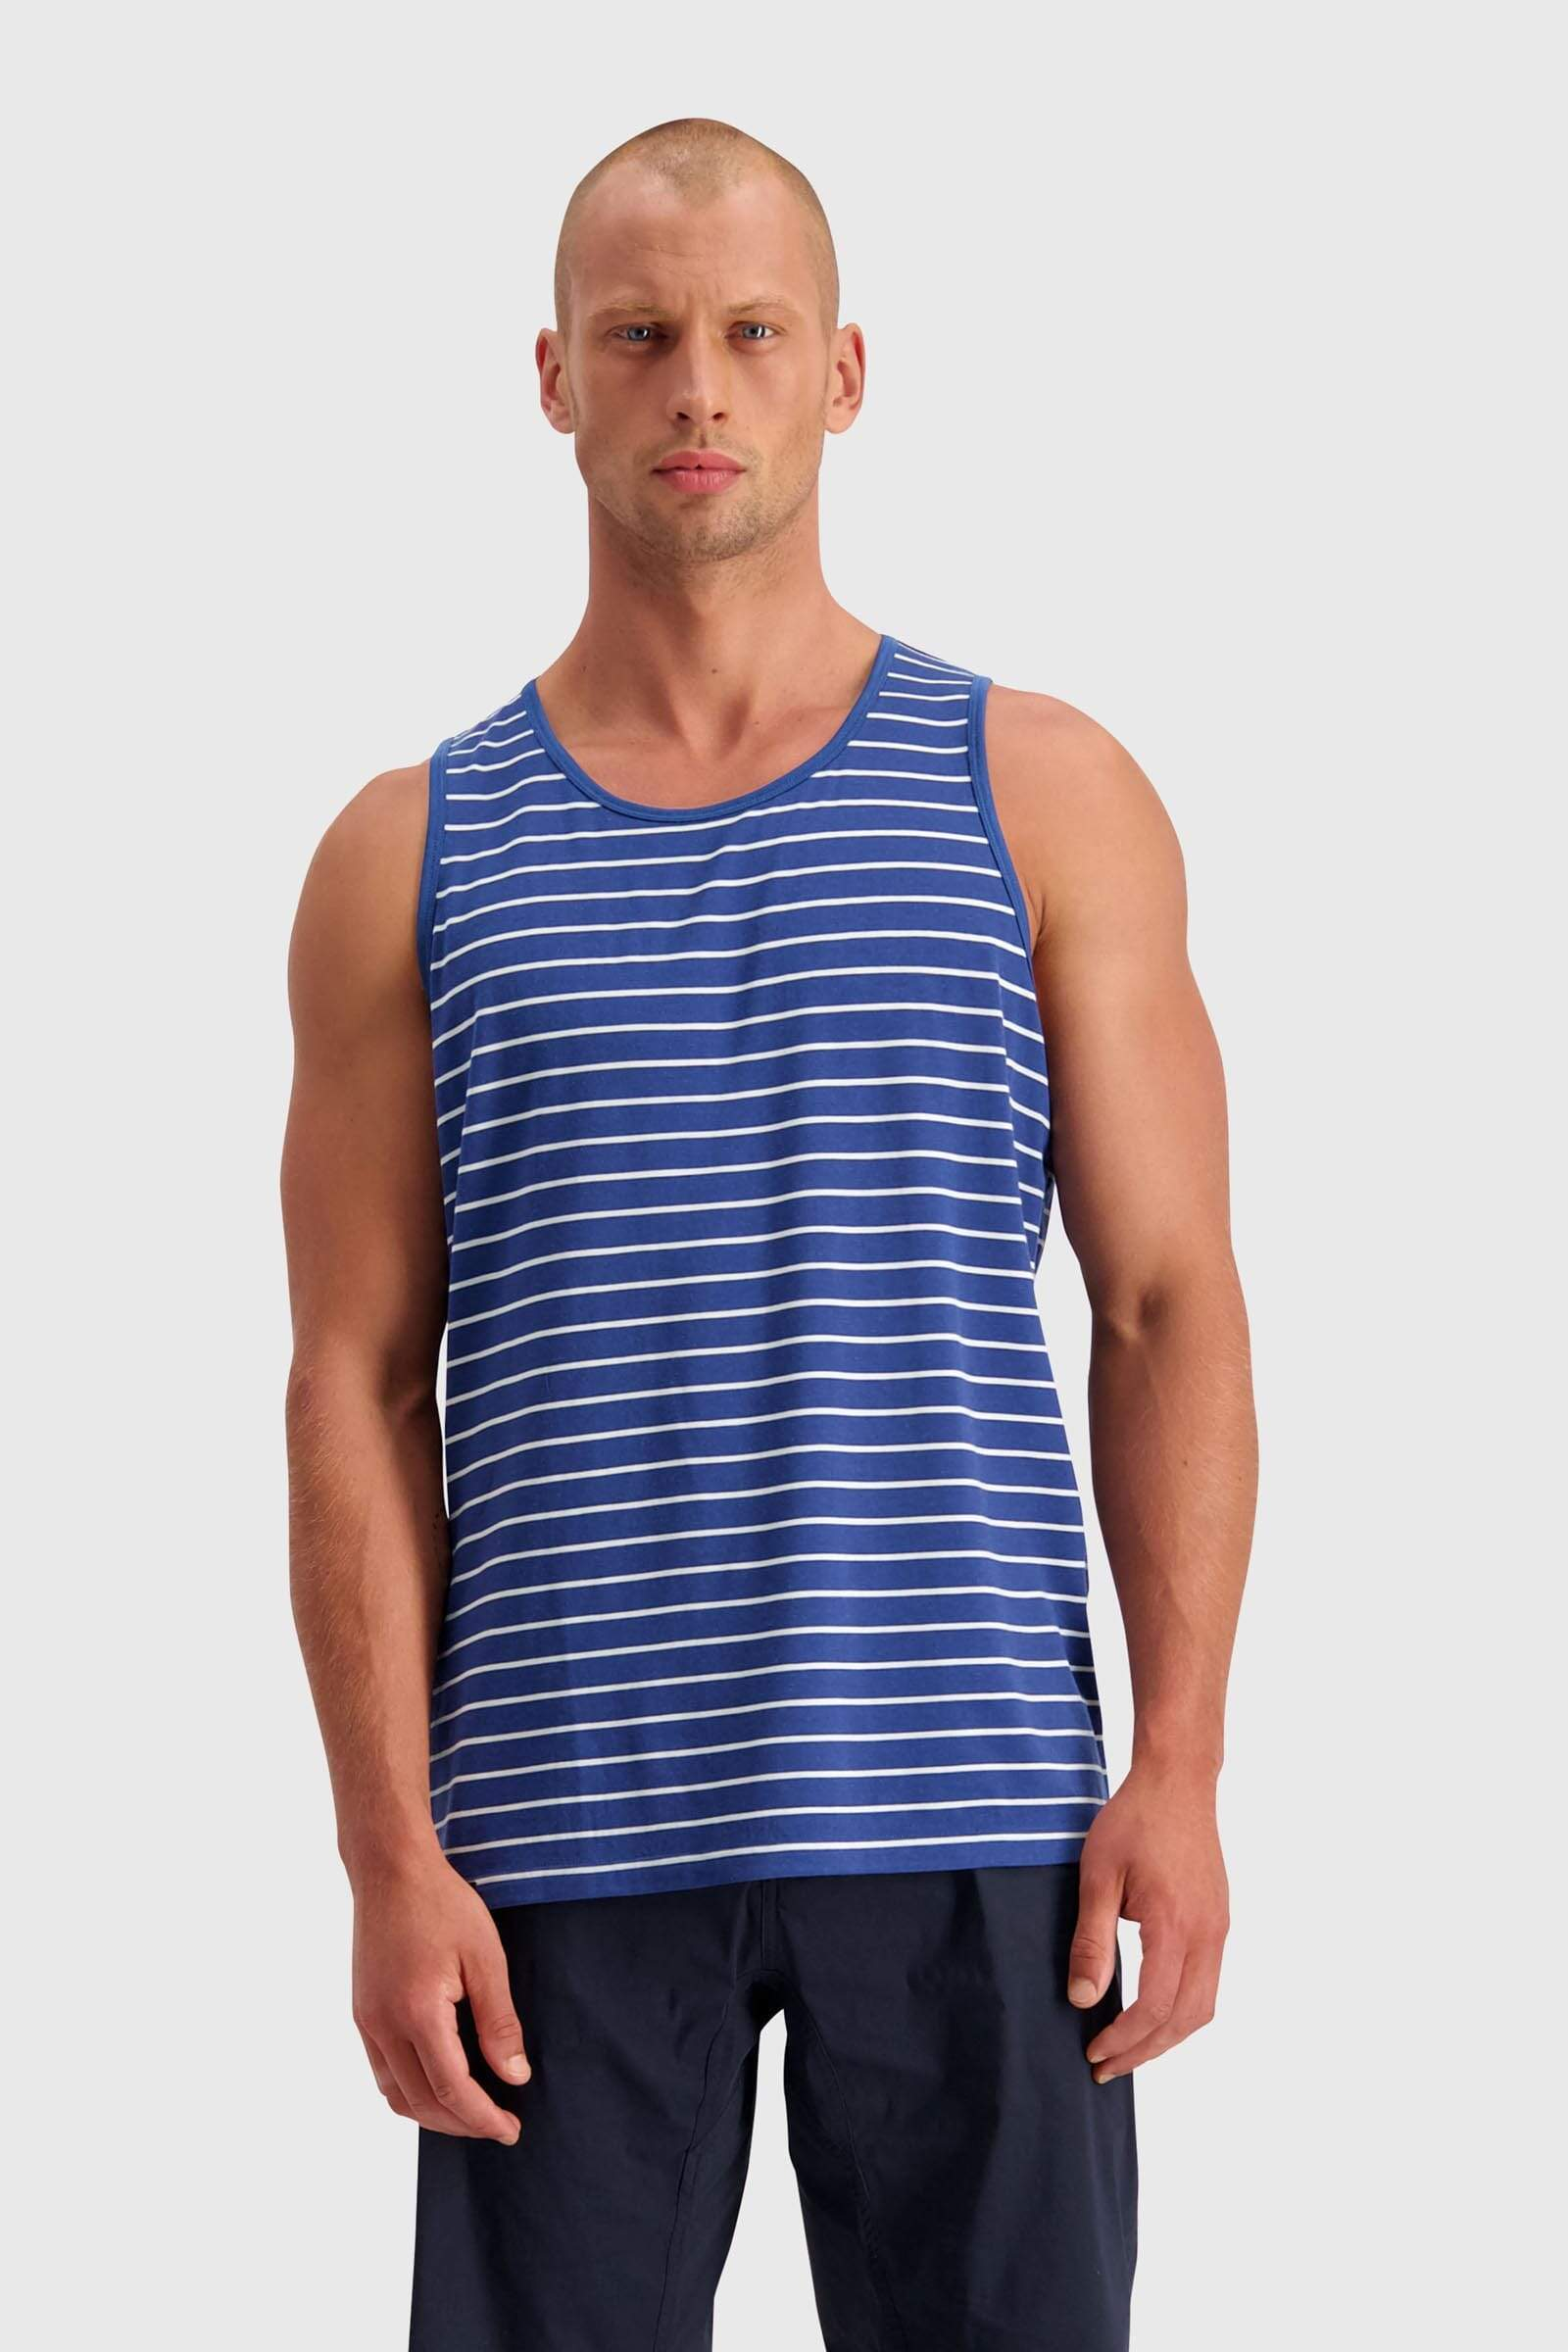 ICON Singlet - Ink Stripe